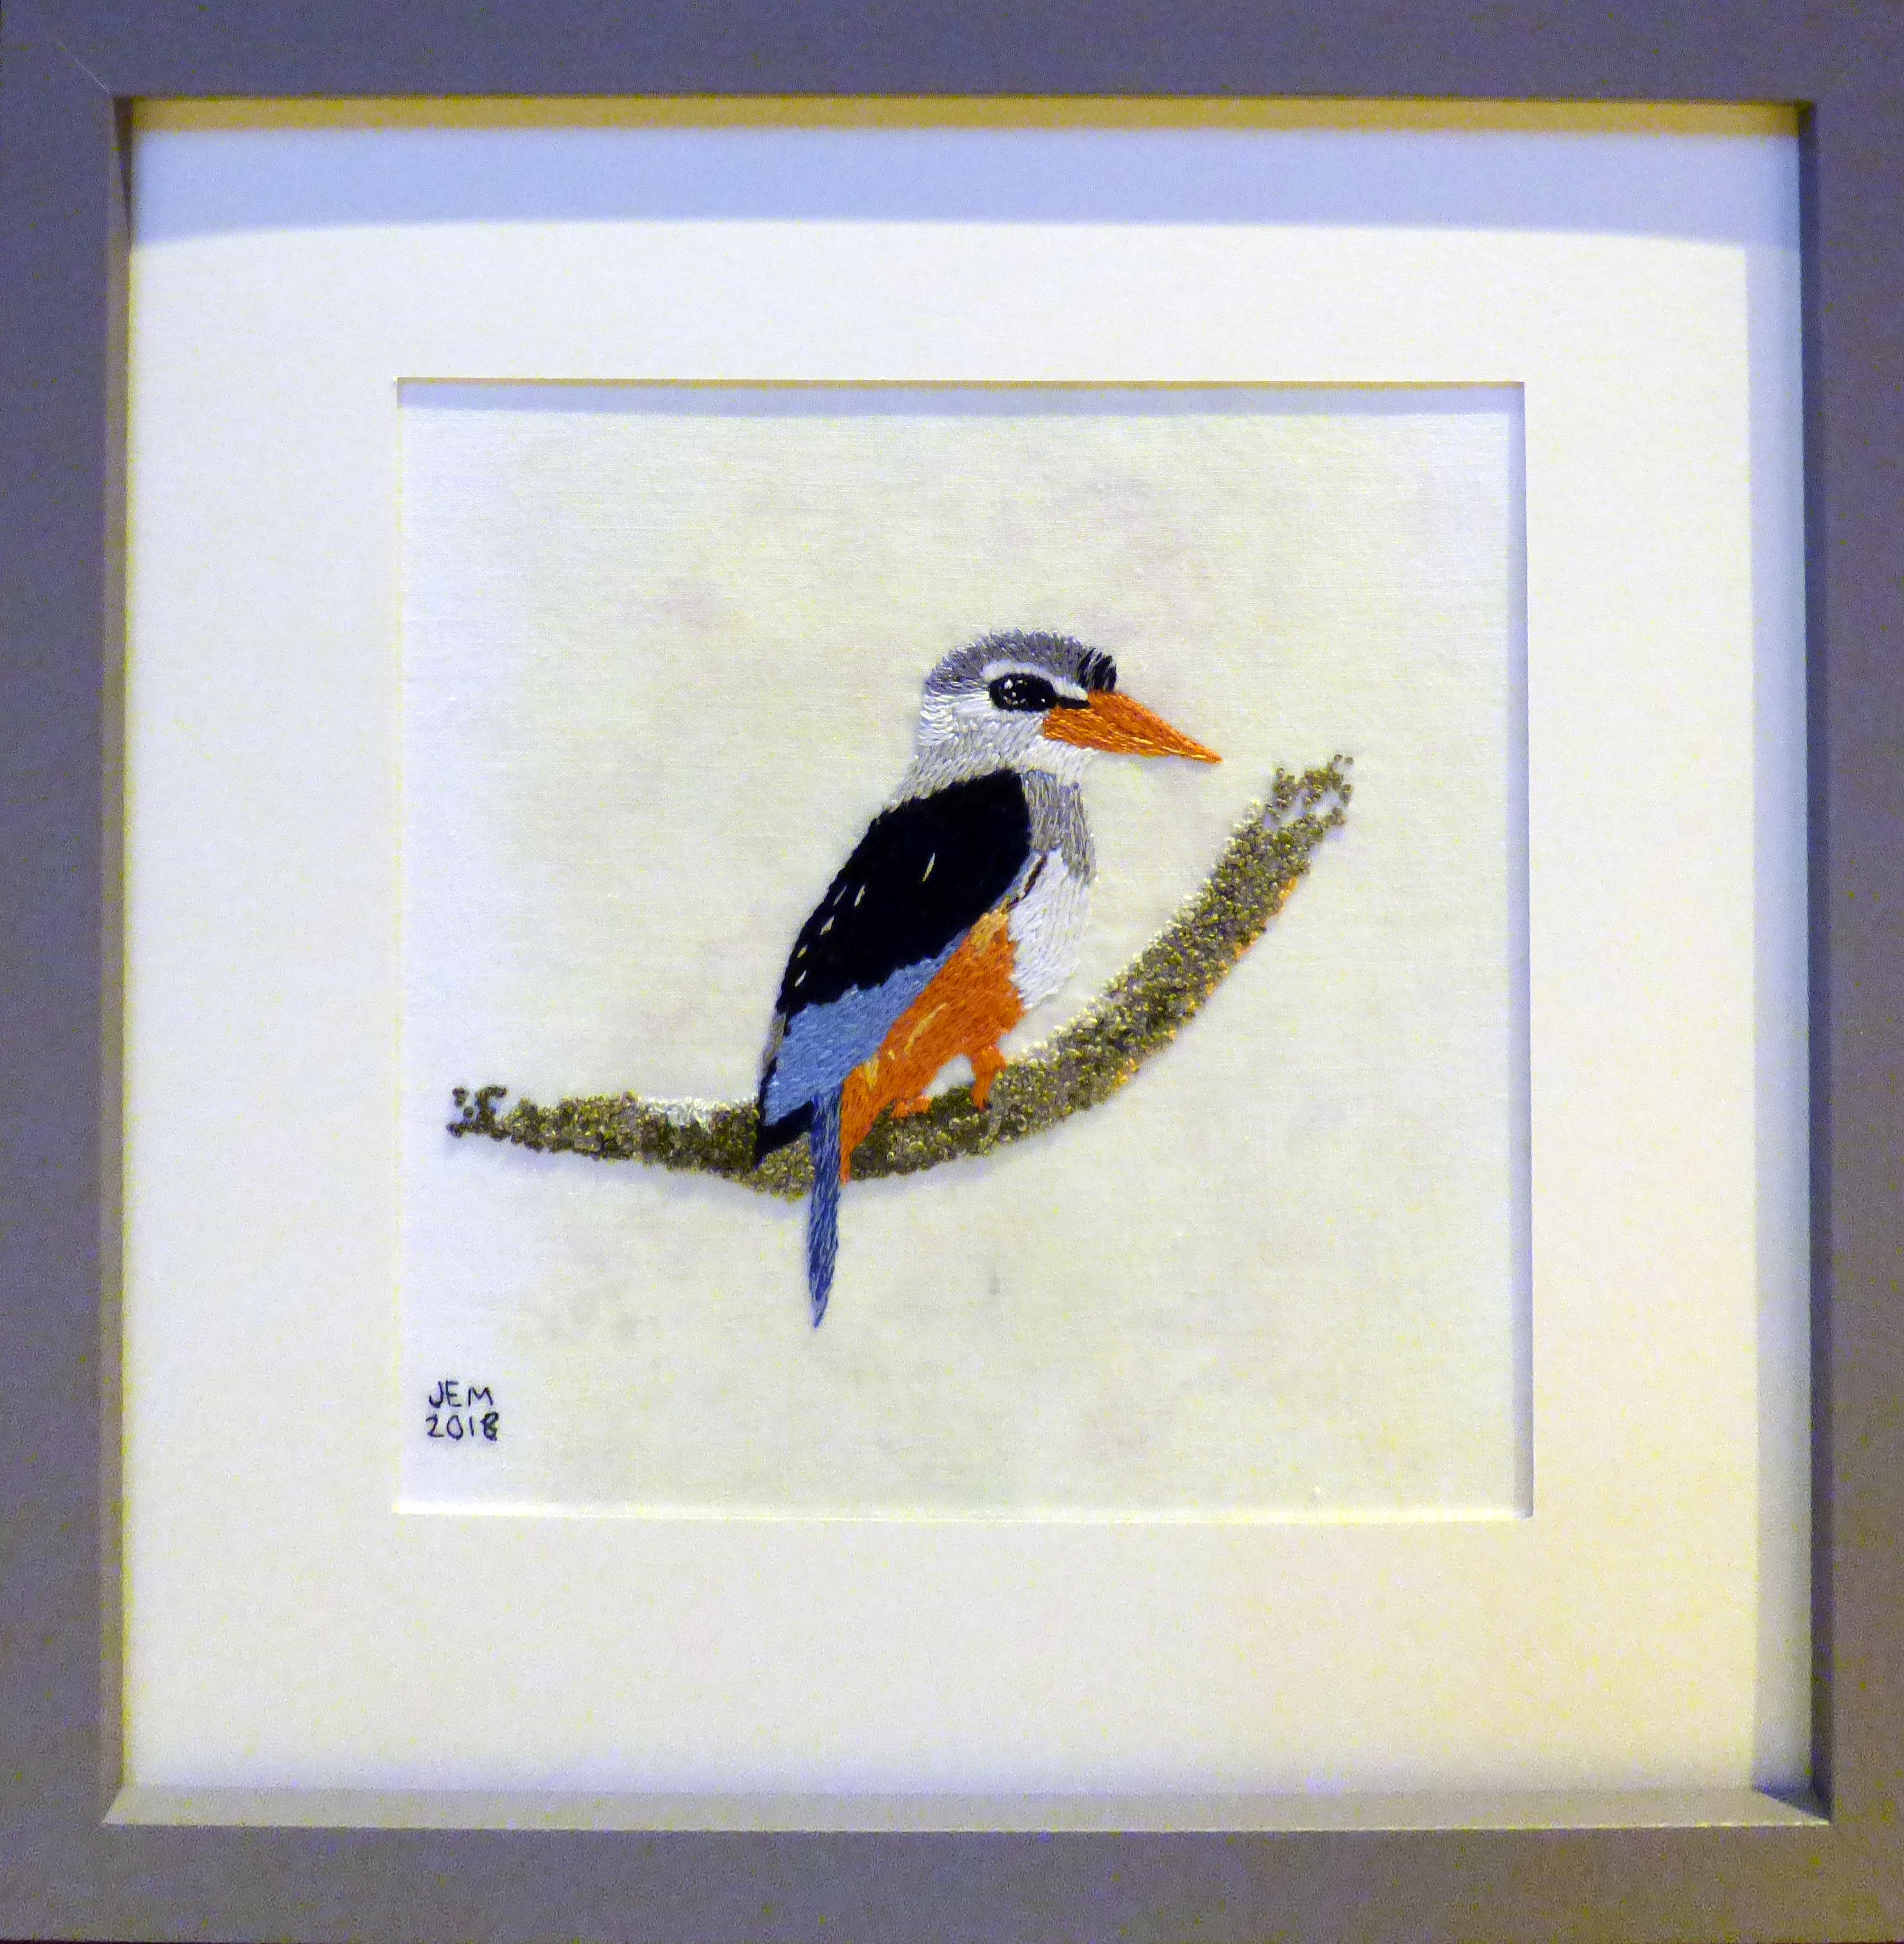 GREY-HEADED KINGFISHER by Jean Mather, hand embroidery,  Endeavour exhibition, Liverpool Cathedral, Sept 2018